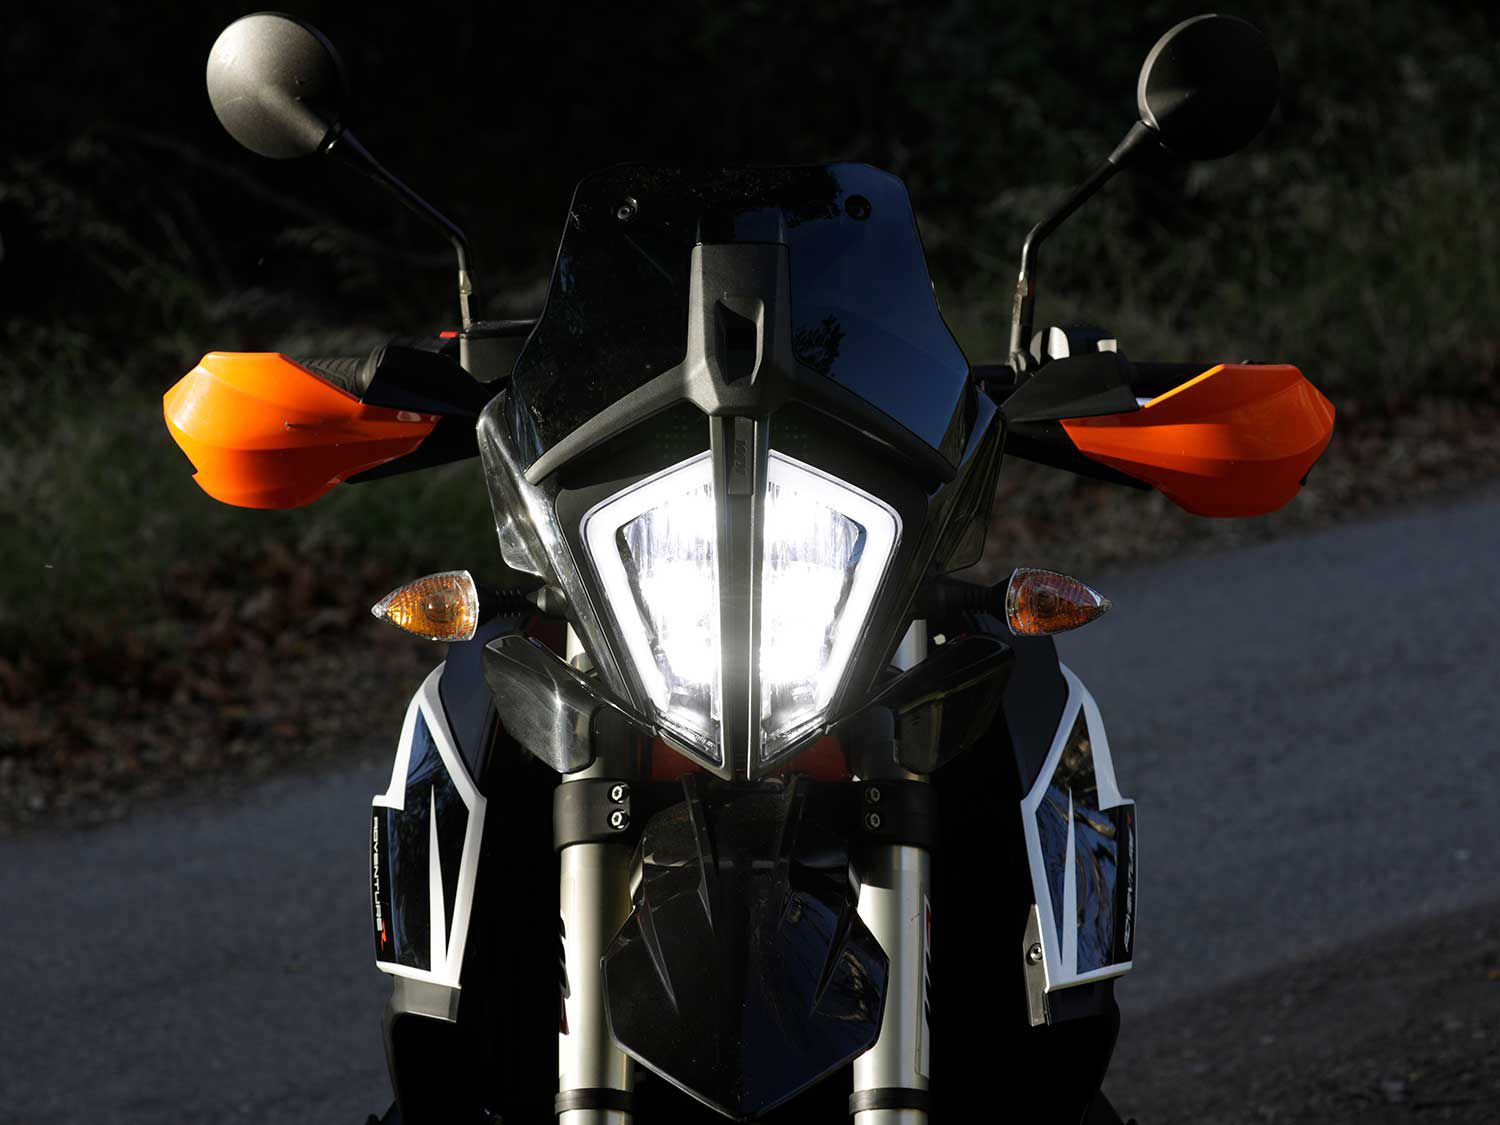 The 790 Adventure R employs bold LED lighting that illuminates the road effectively during night rides.